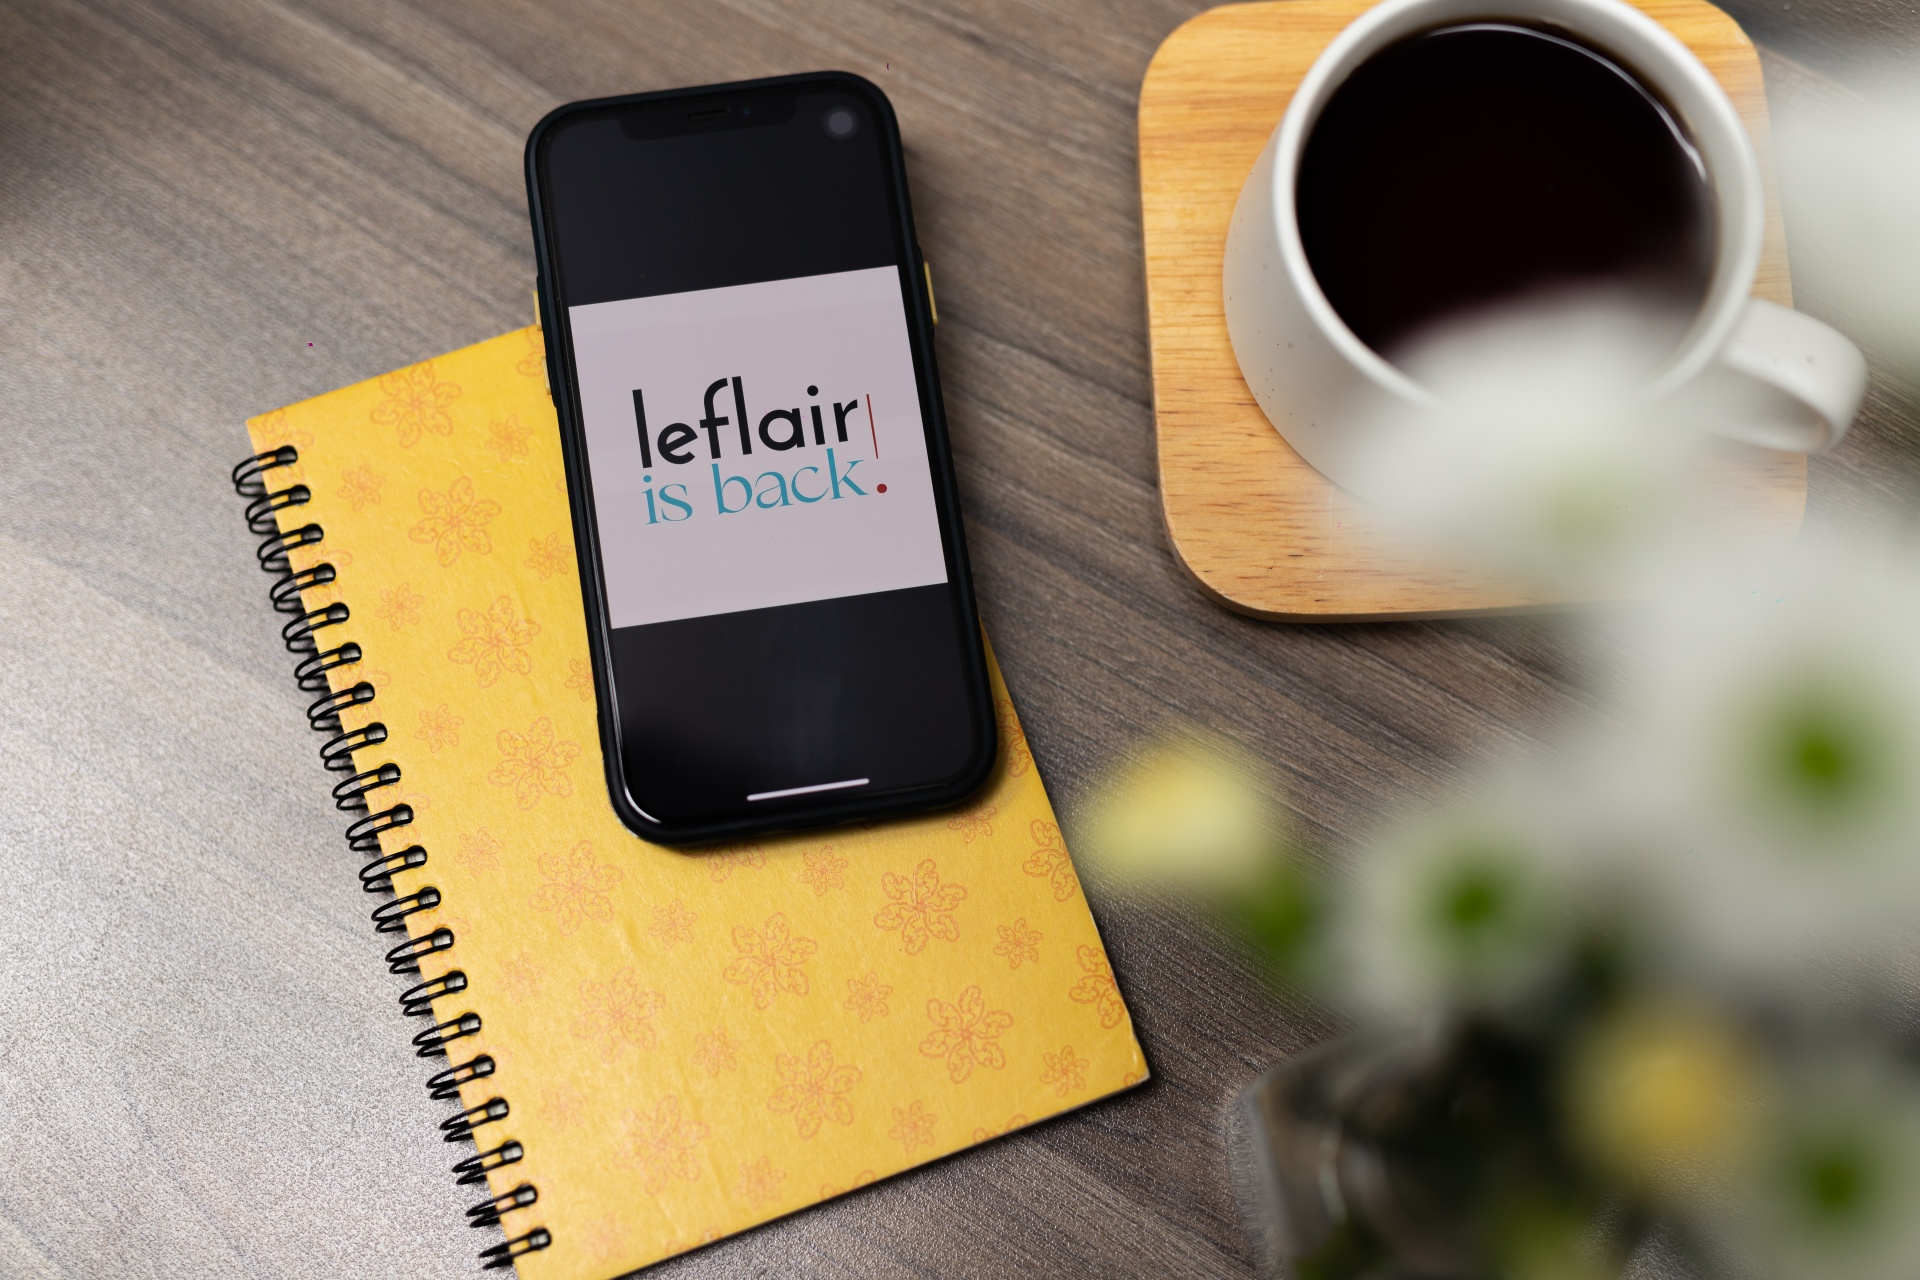 Leflair flying high with double-digit weekly growth amid comeback